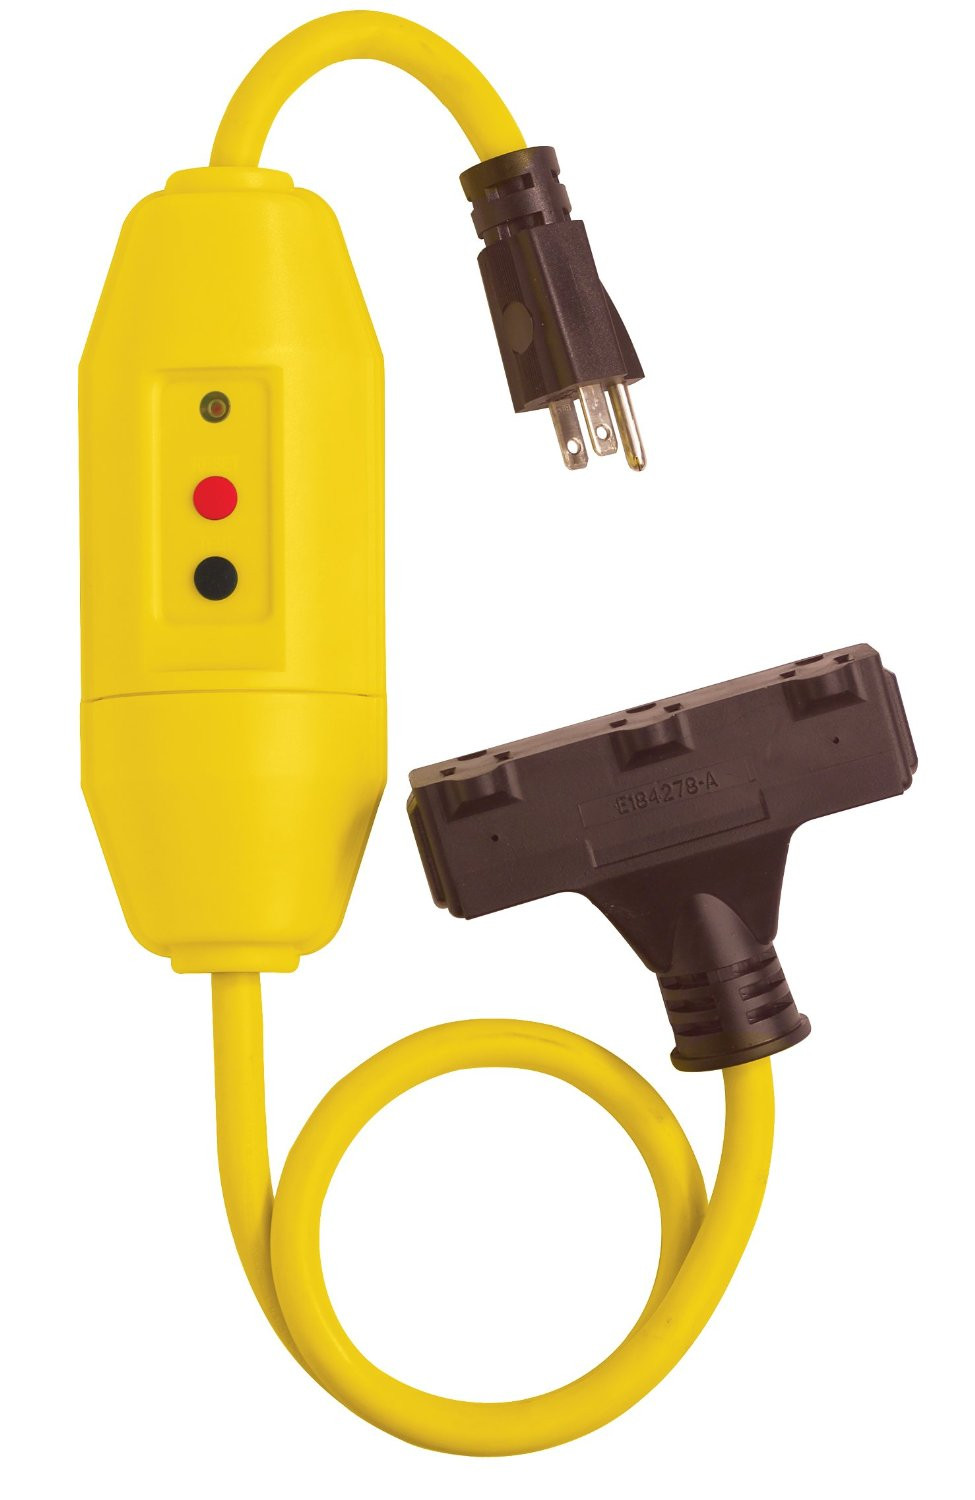 Three Way Cable : Gfci gauge wire with cord and three way power block